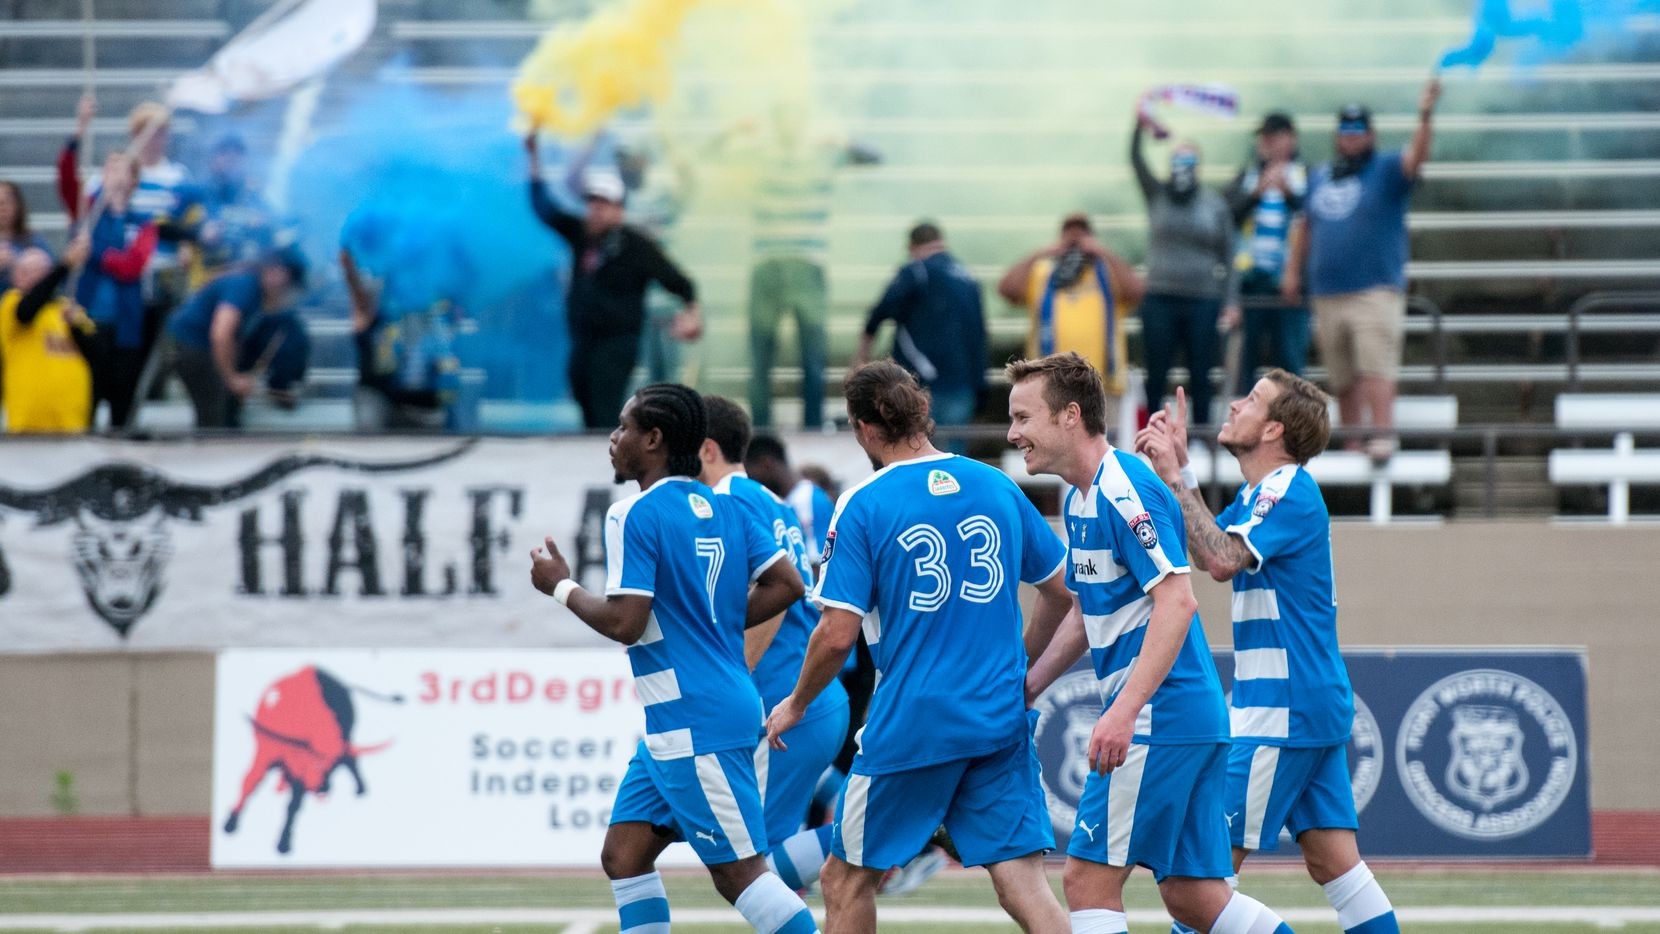 Fort Worth Vaqueros celebrate a goal at Farrington Field.